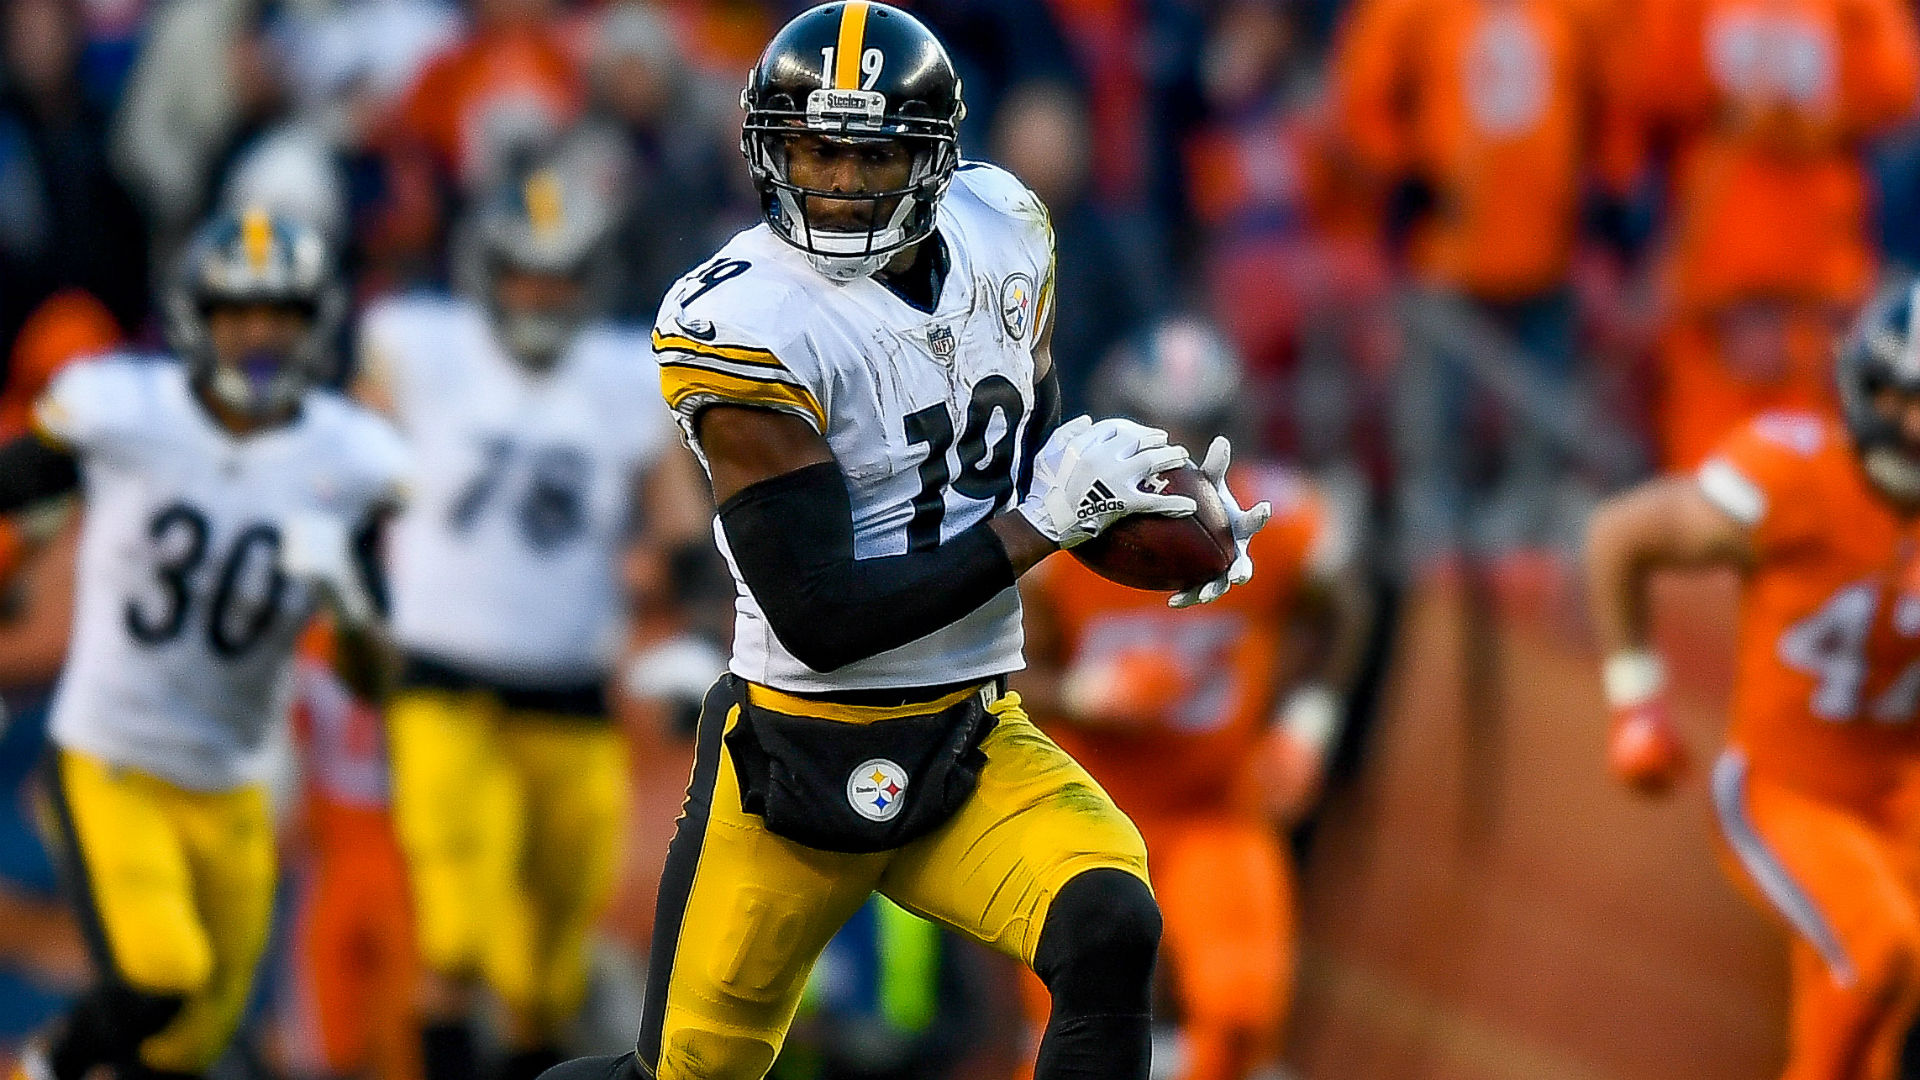 Steelers WR JuJu Smith-Schuster welcomes attention Antonio Brown receives from opponents